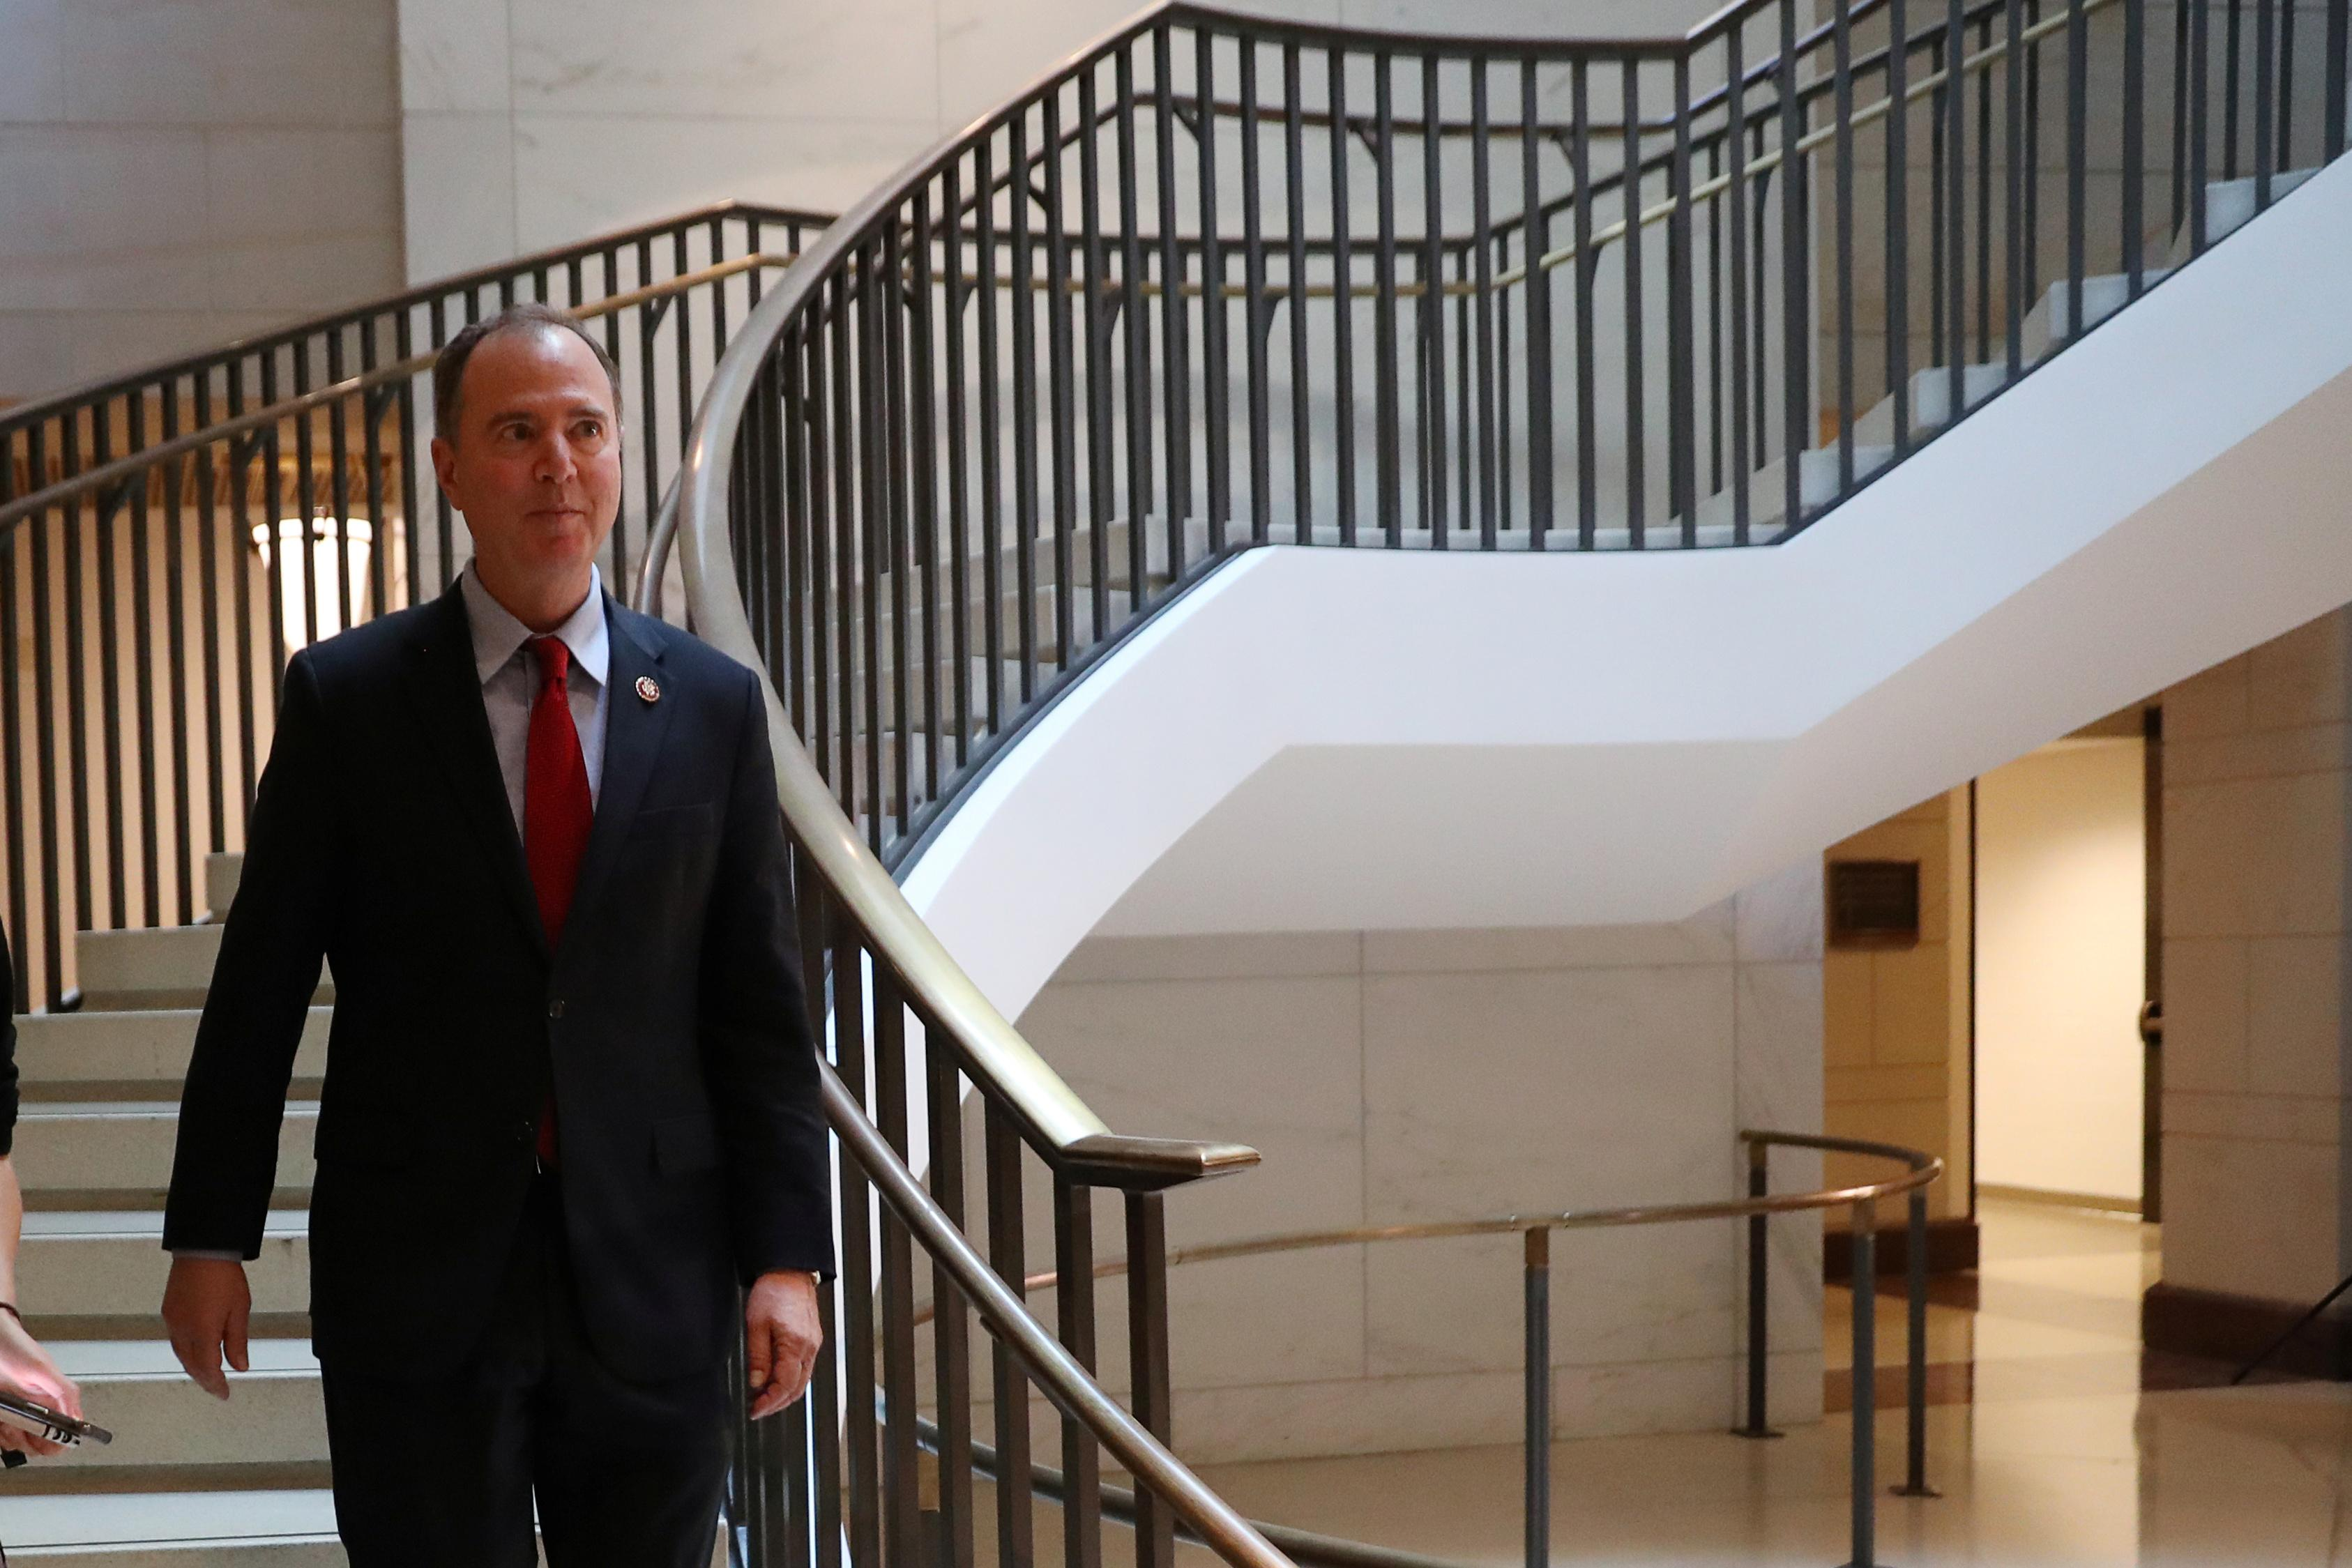 House Intelligence Committee Chairman Rep. Adam Schiff (D-CA) arrives prior to participating in the closed deposition of George Kent, deputy assistant secretary of state for Europe and Eurasian Affairs, as part of the Democratic-led U.S. House of Representatives impeachment inquiry into U.S. President Donald Trump on Capitol Hill in Washington, U.S., October 15, 2019. Leah Millis